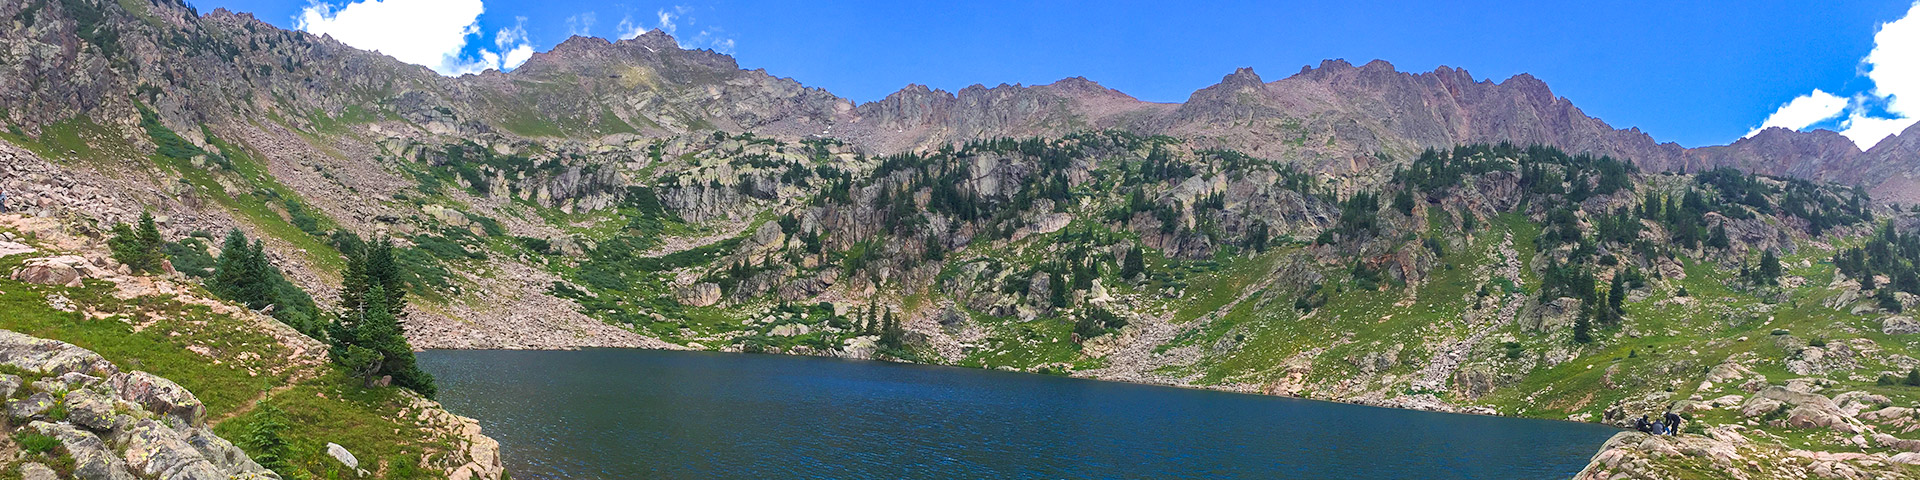 Panoramic views from the Pitkin Lake Trail hike near Vail, Colorado